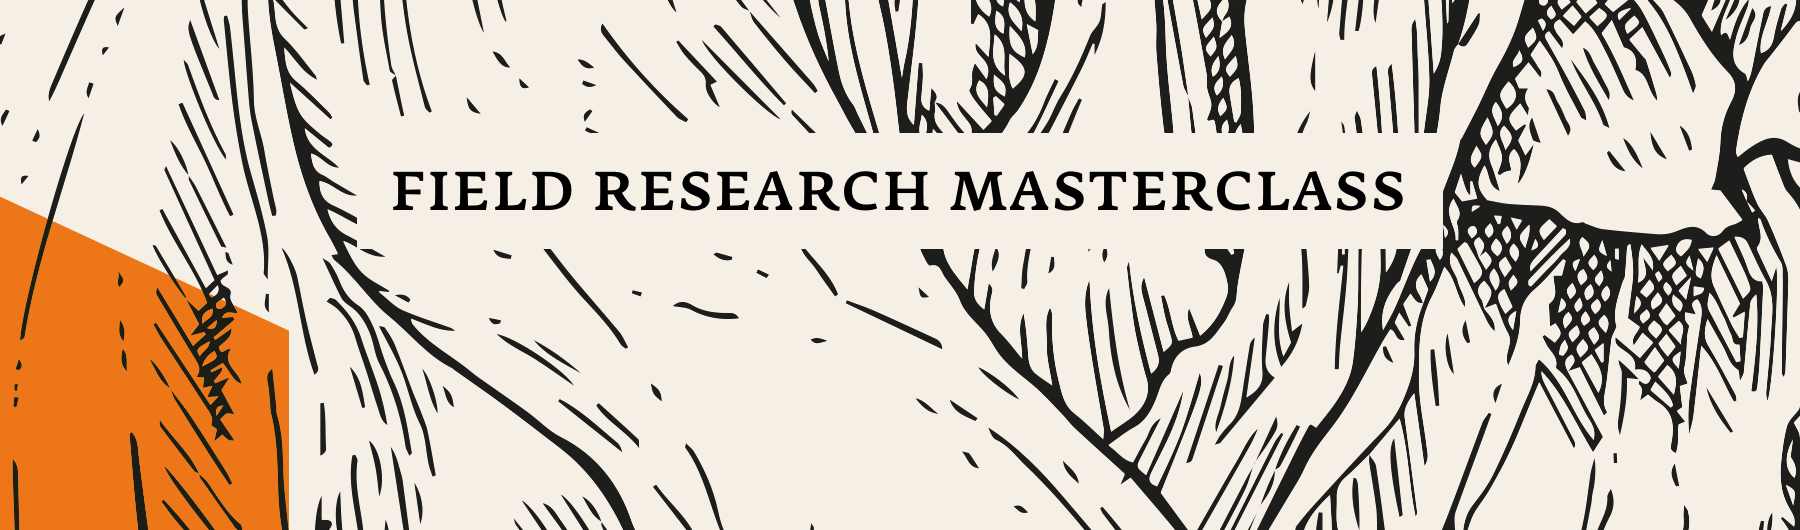 Clearleft Presents: Jan Chipchase - Field Research Masterclass, May 29